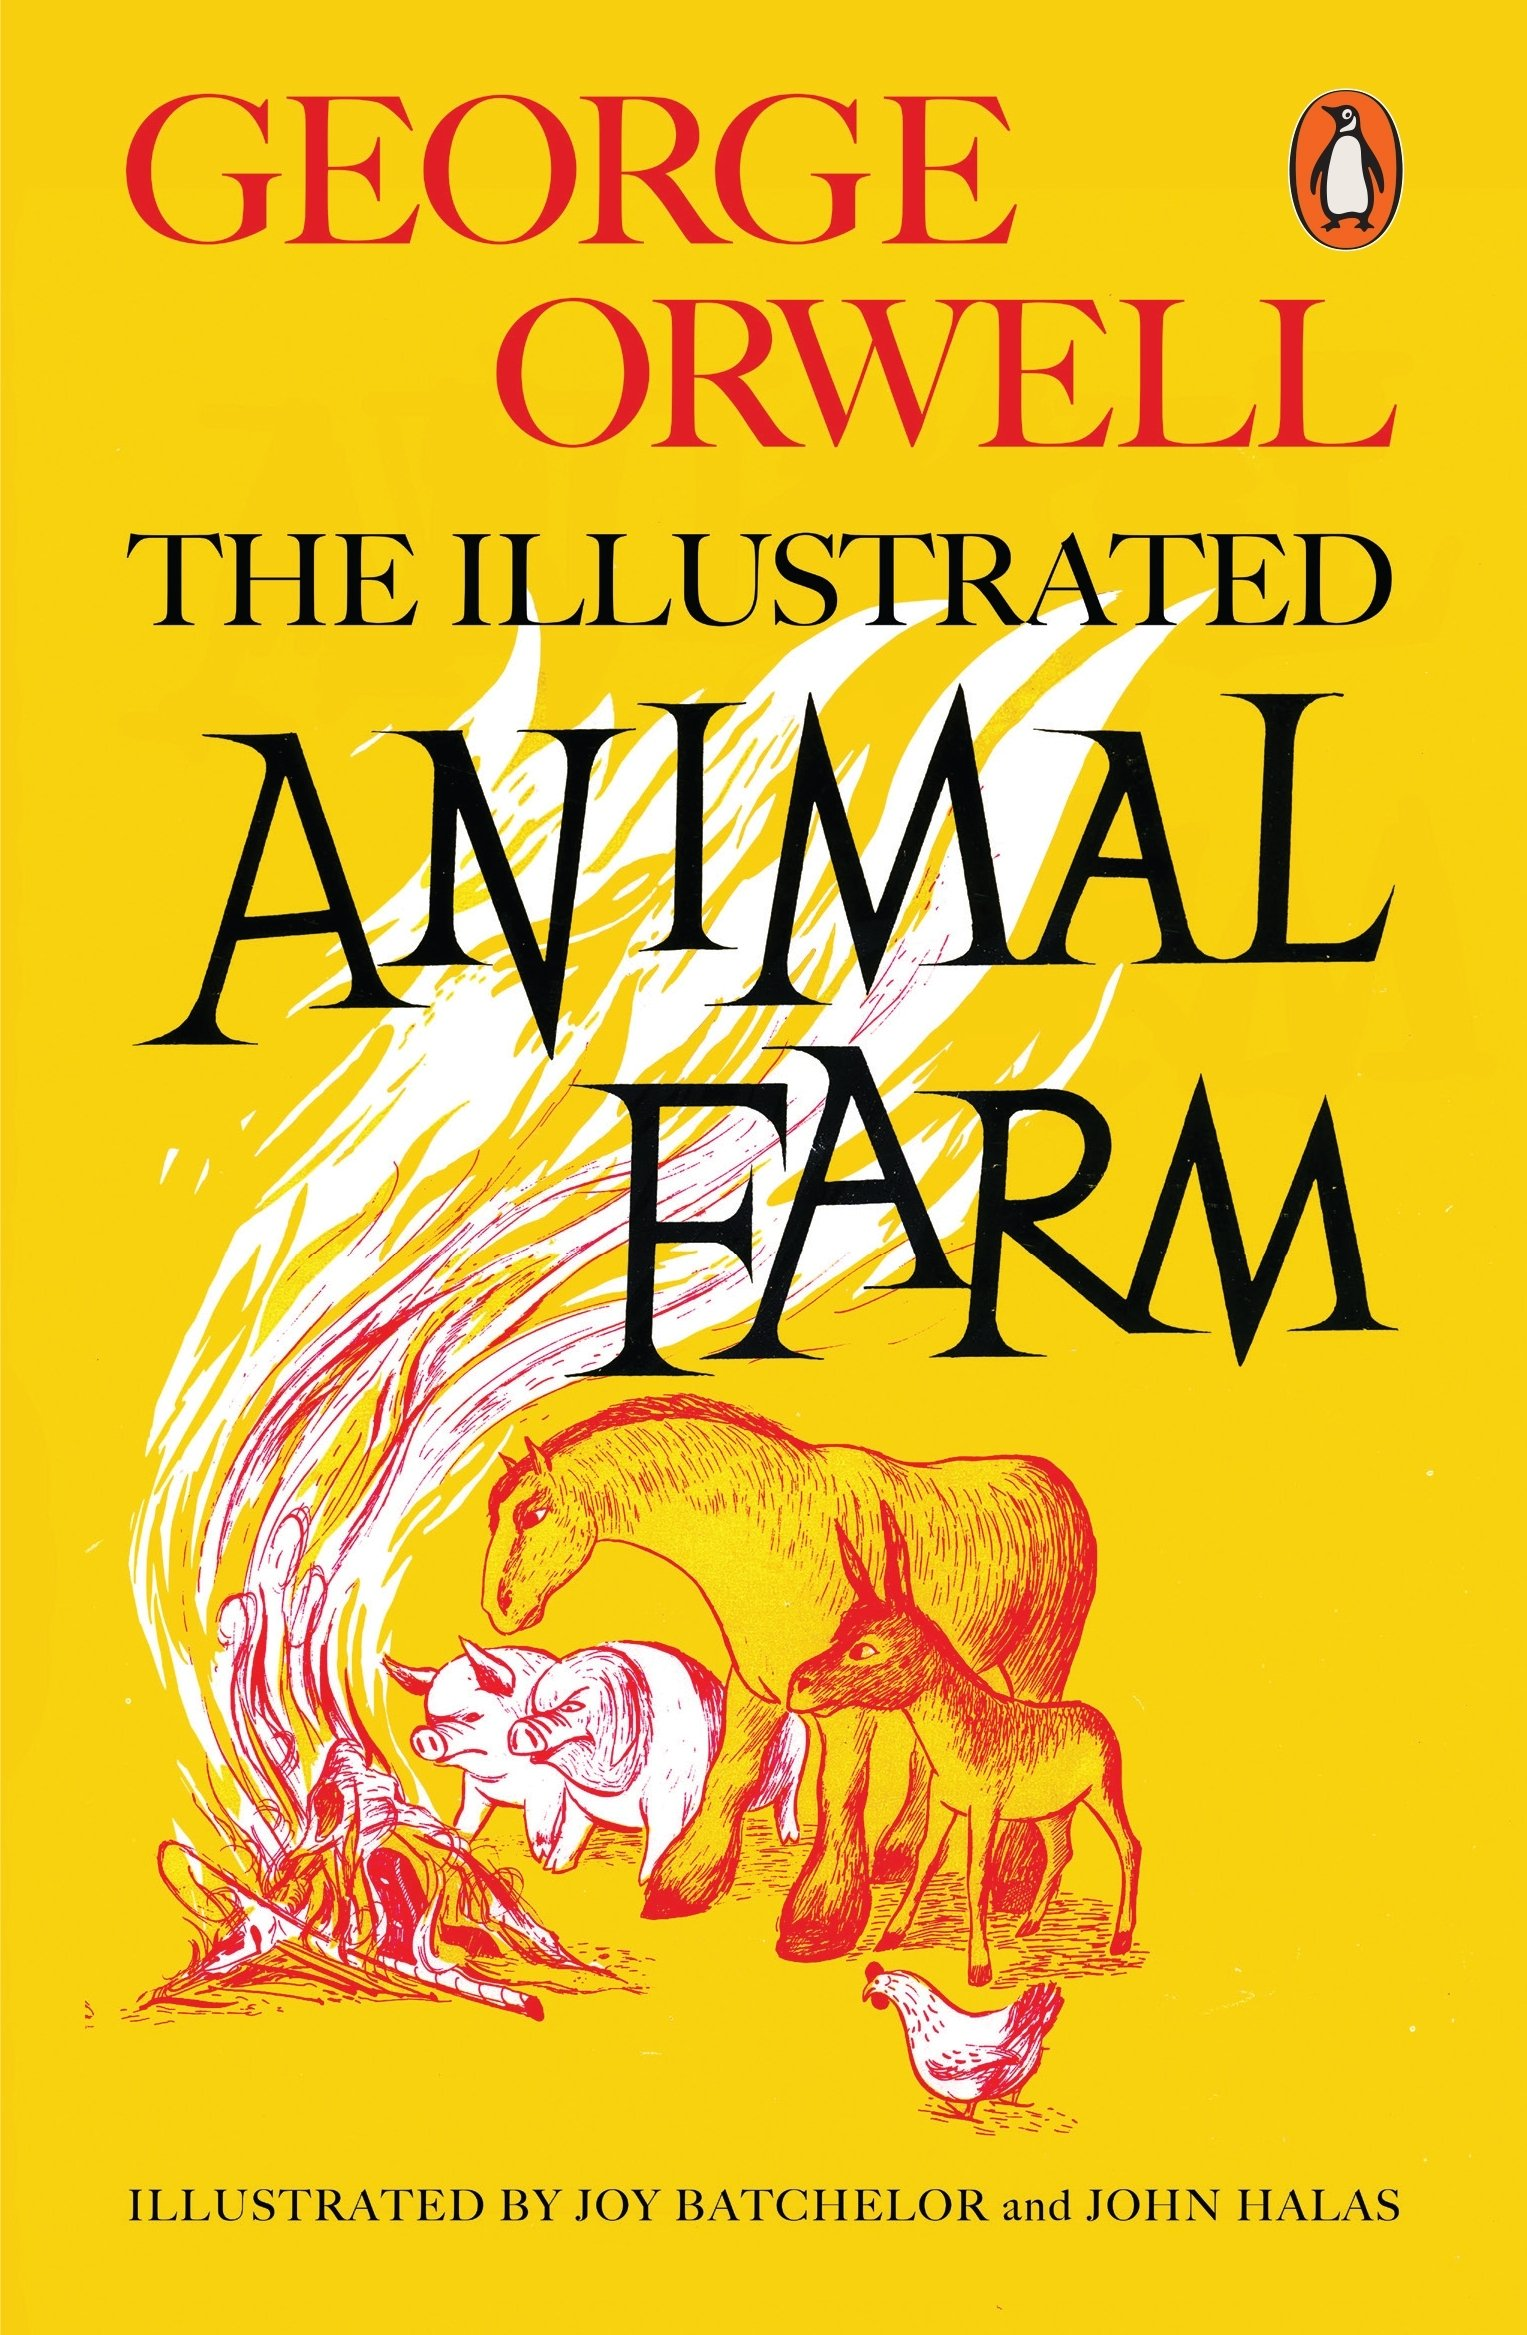 Animal Farm Illustrated 75th Anniversary Edition Penguin Modern Classics George Orwell Illustrated By Joy Batchelor And John Halas Joy Batchelor And John Halas 9780241196687 Amazon Com Books